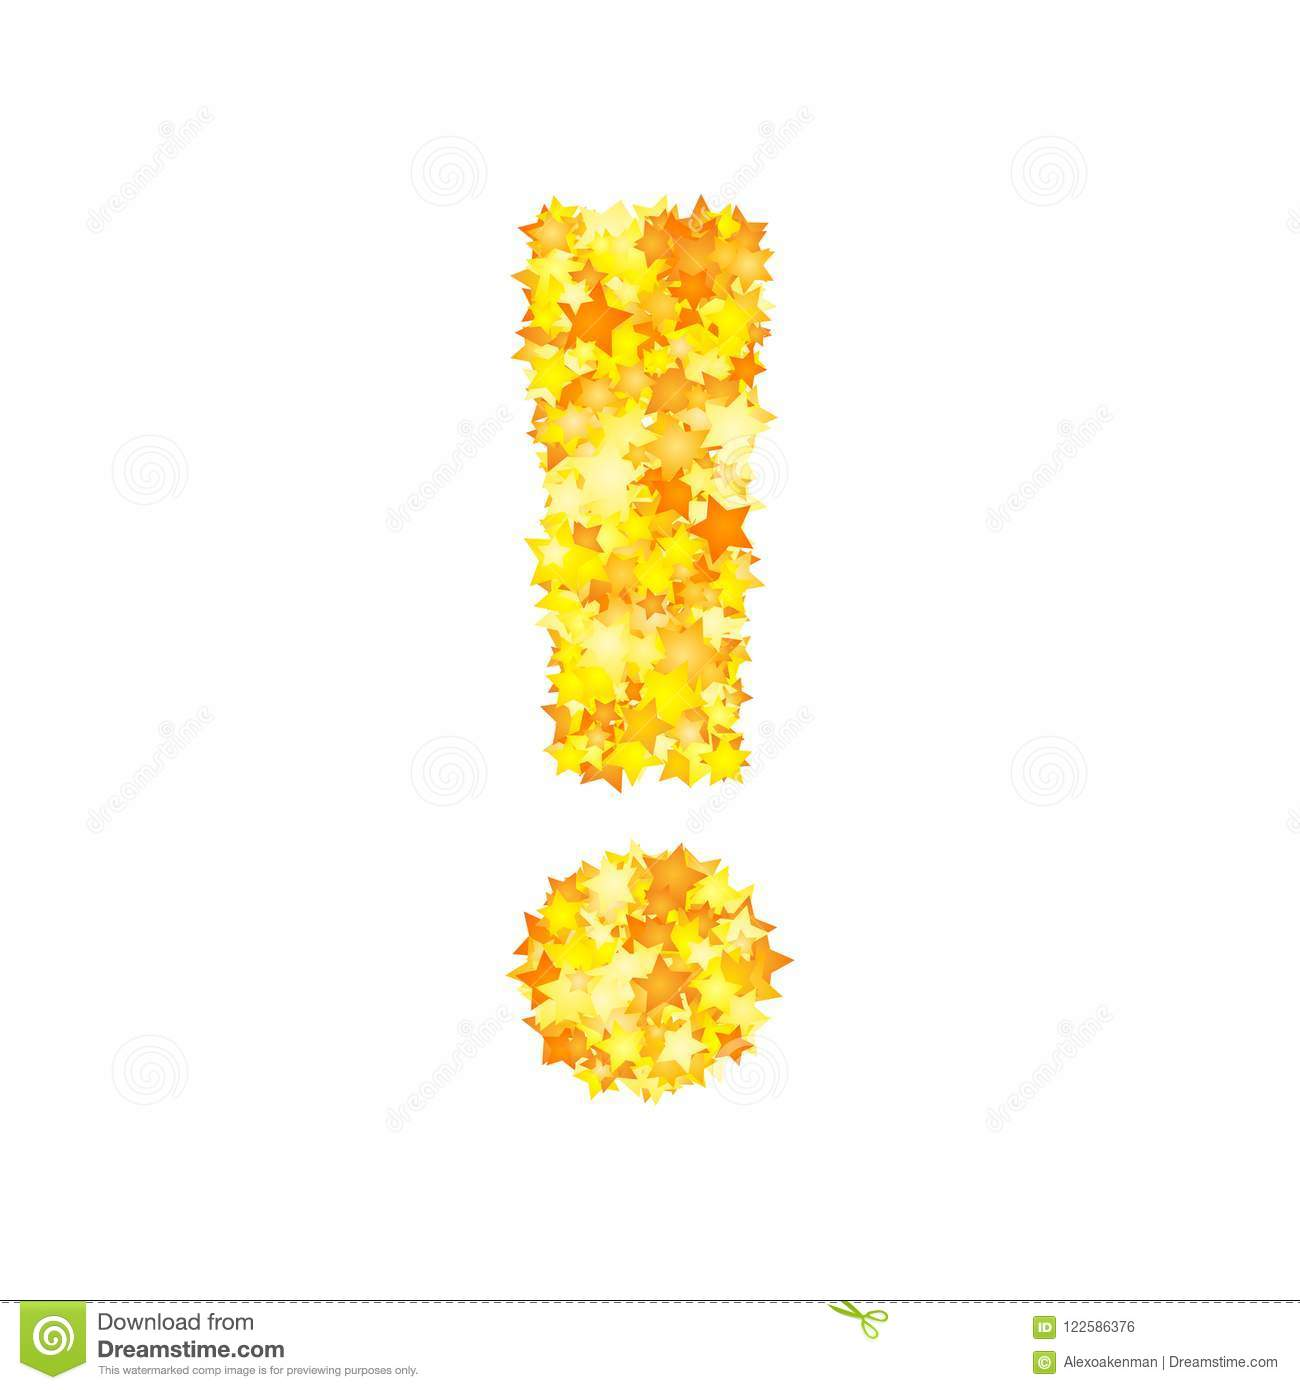 Vector yellow stars font, exclamation mark